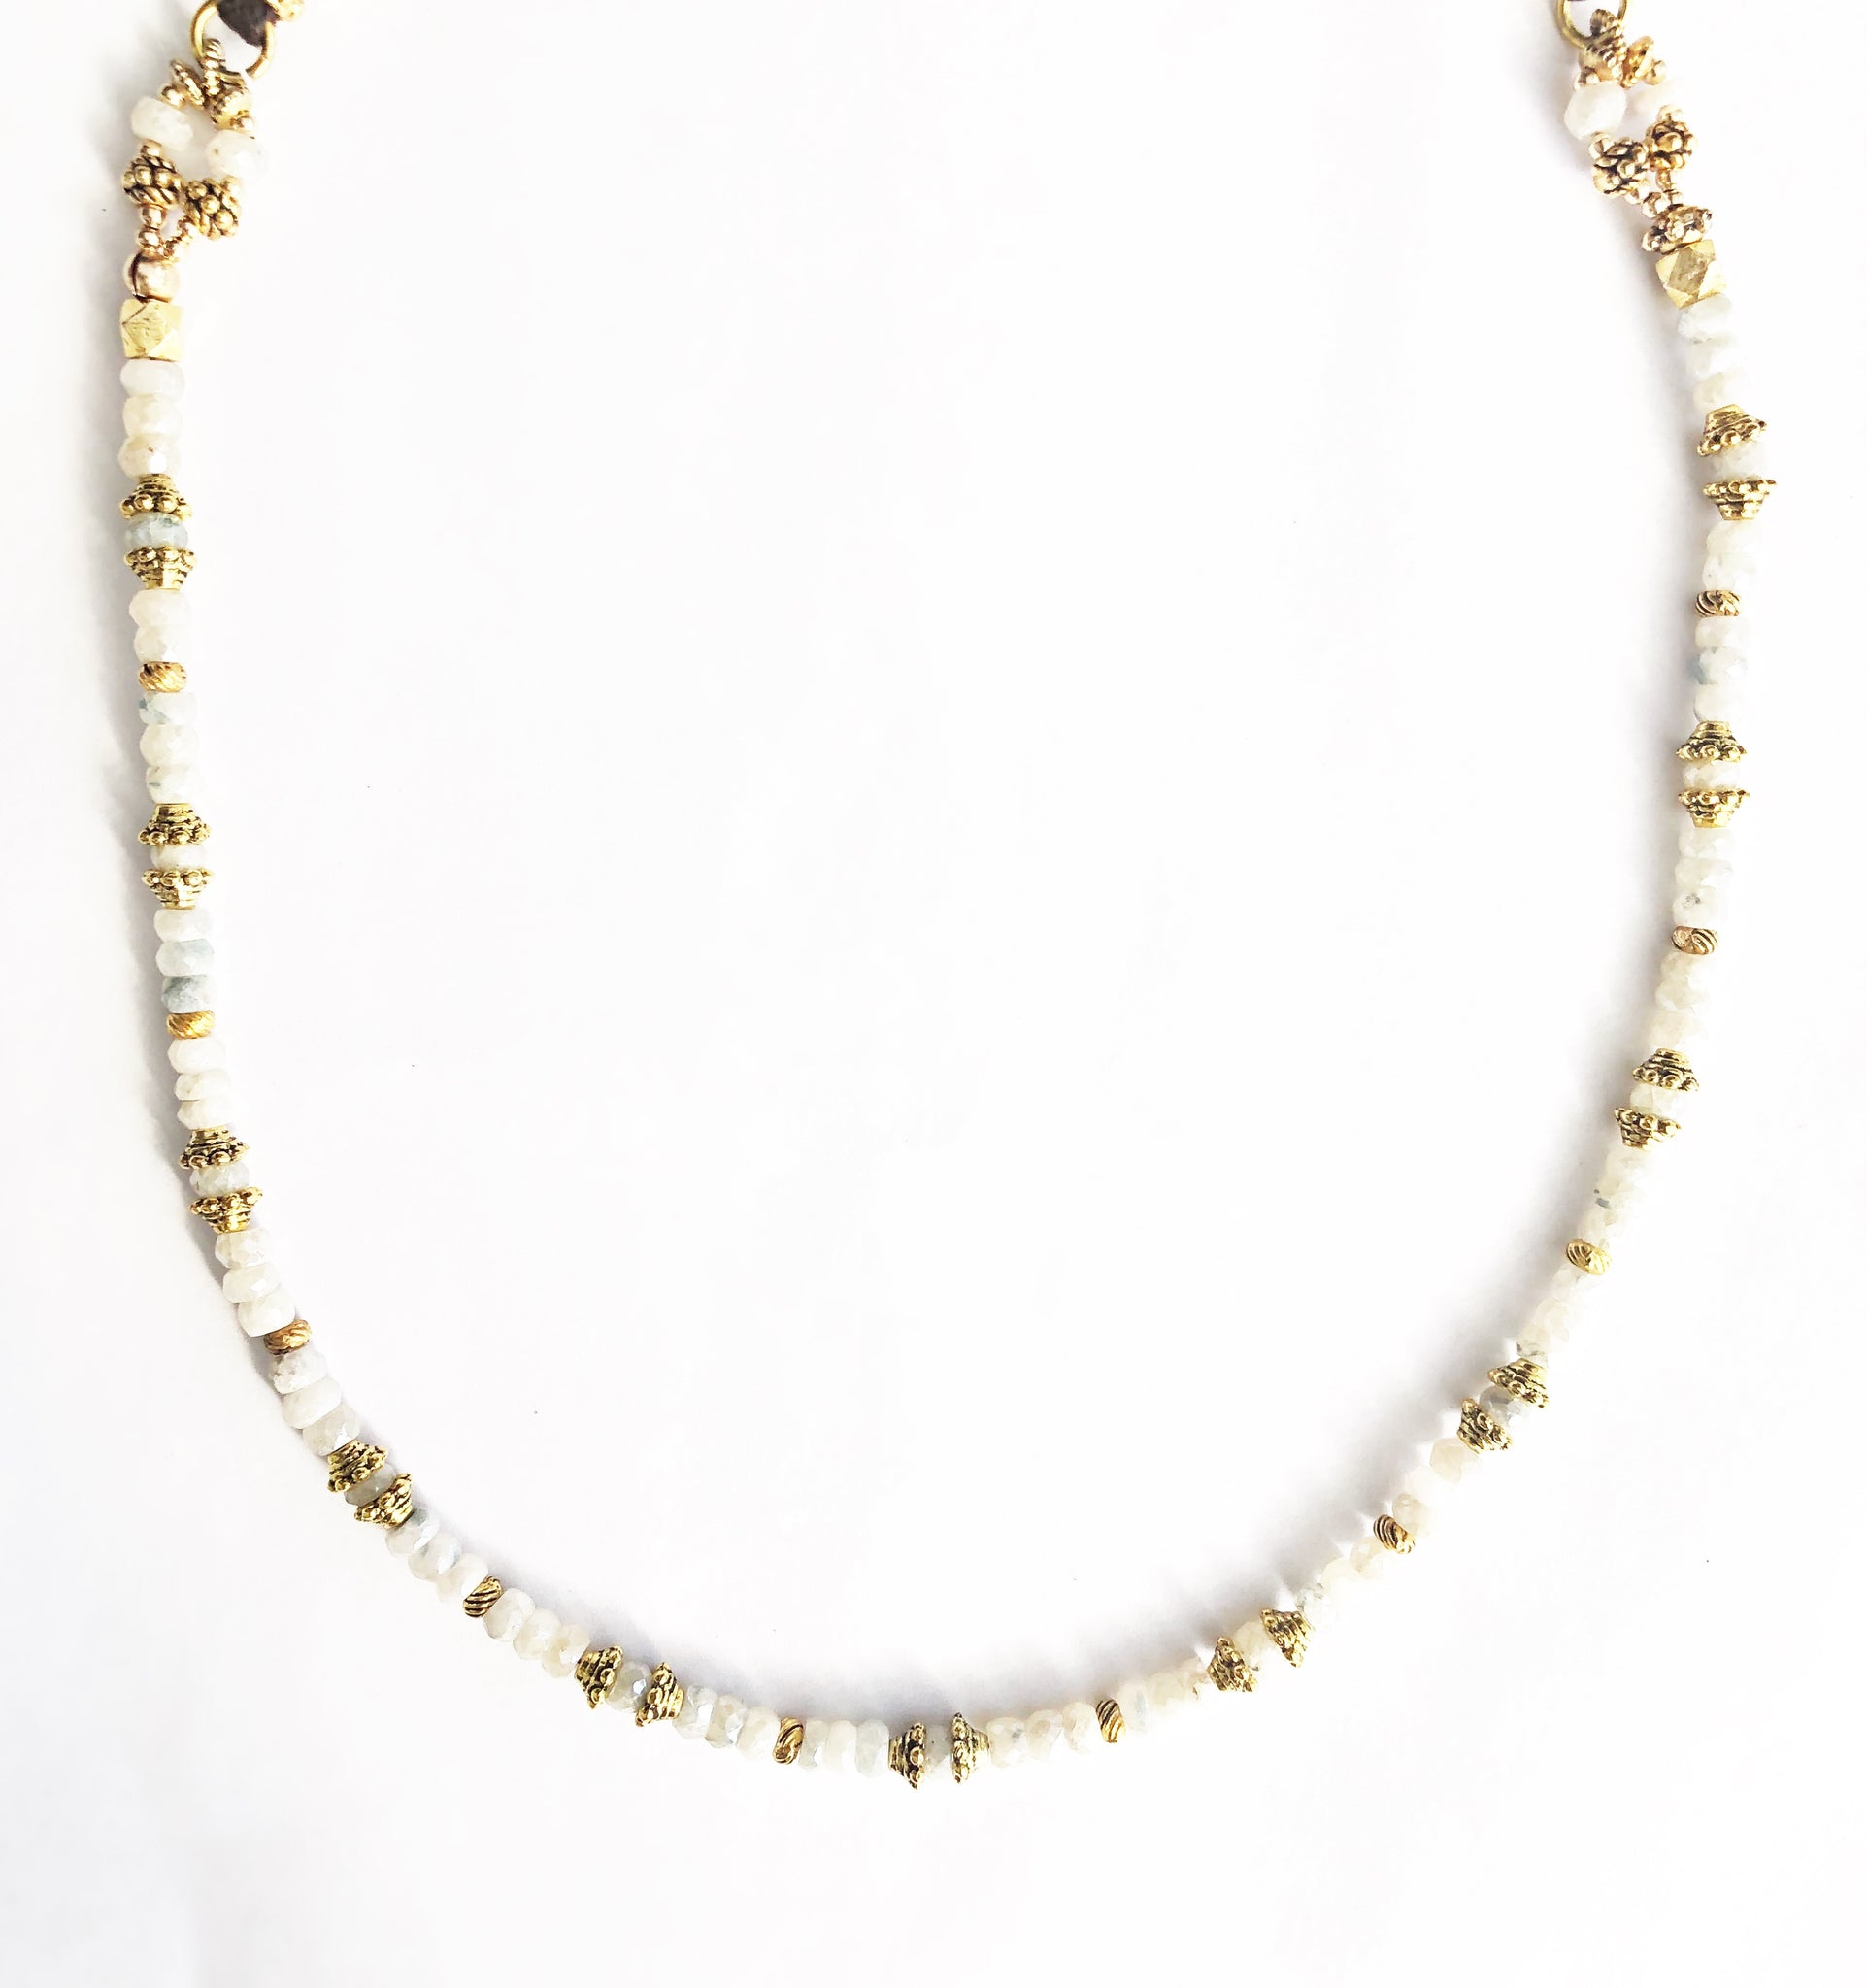 White and Gold Sapphirite Necklace